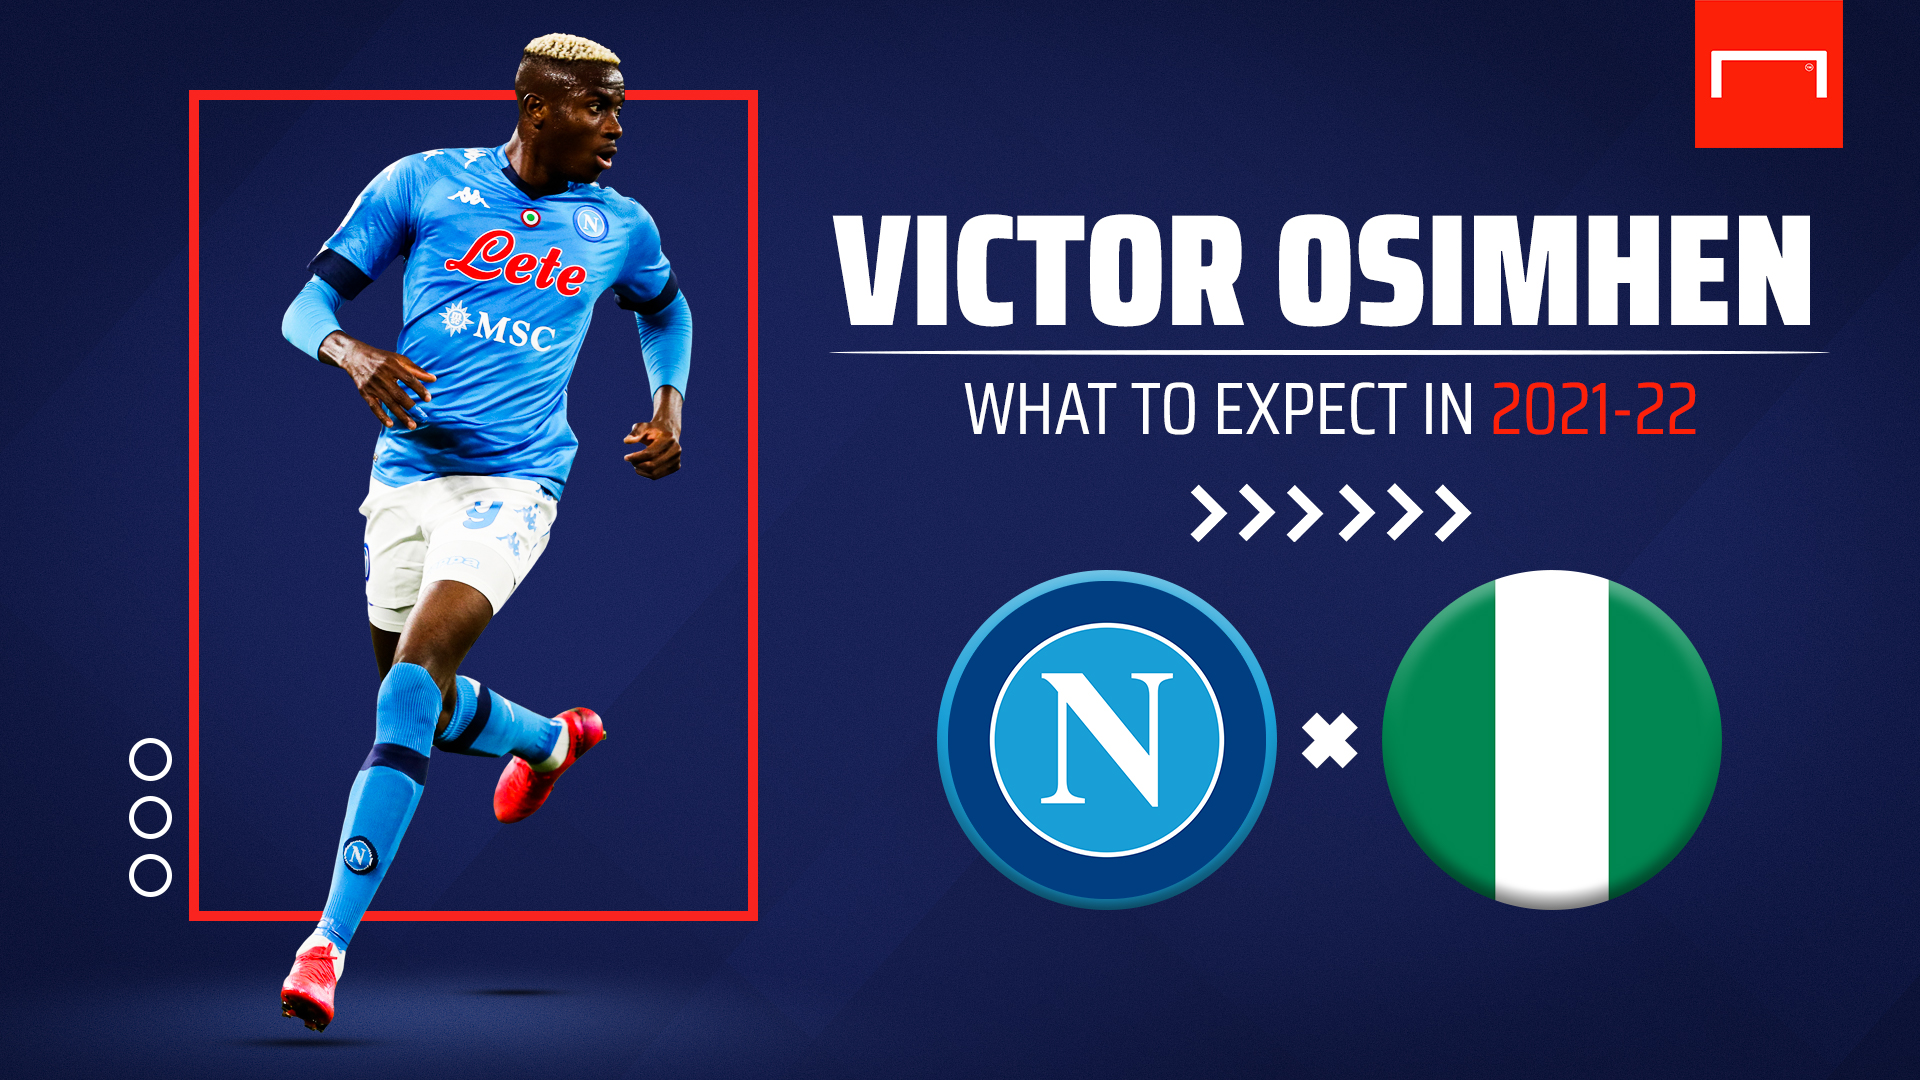 Victor Osimhen: What to expect in 2021-22